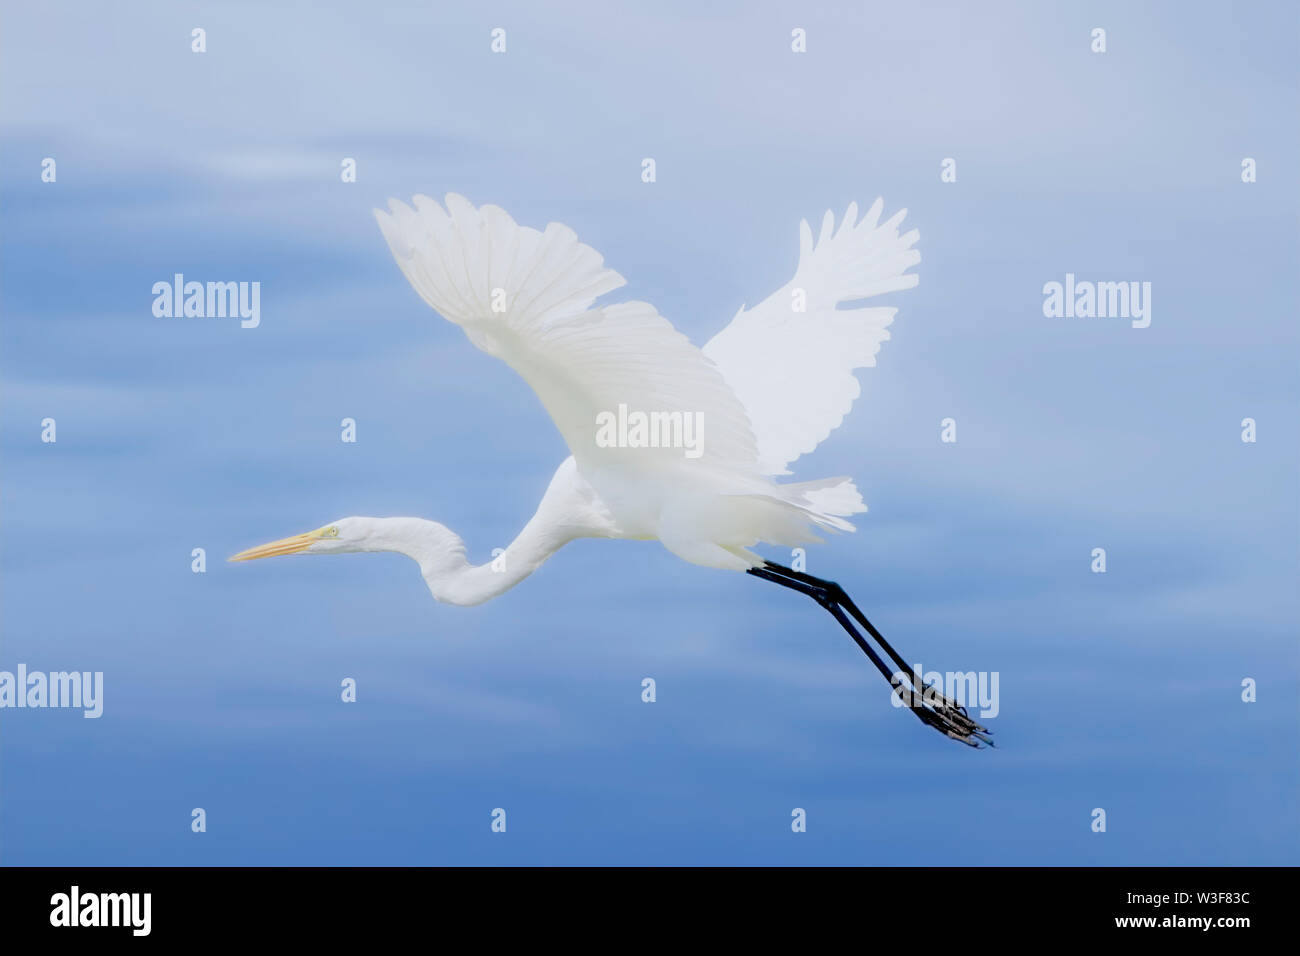 A Great White Egret soars above the Florida Everglades. Great White Egrets are beautiful and majestic birds with a wingspan that can exceed 5 feet. - Stock Image